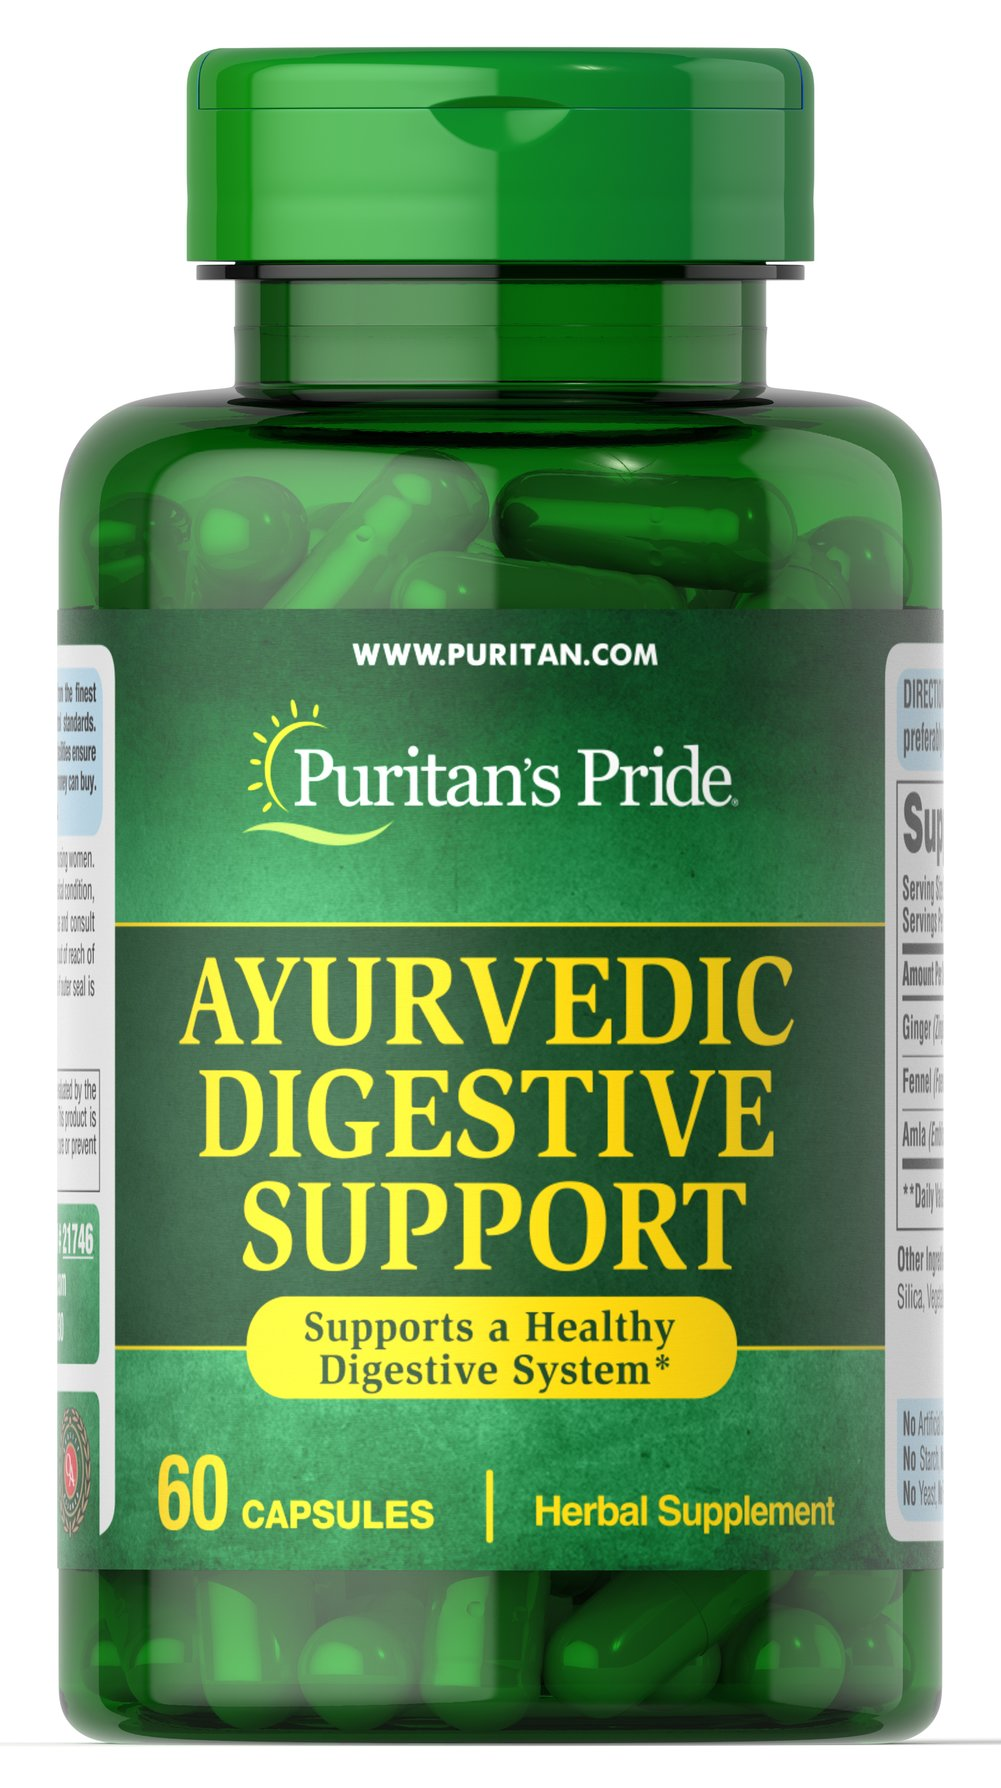 Ayurvedic Digestive Support with Ginger, Fennel, Amla Thumbnail Alternate Bottle View